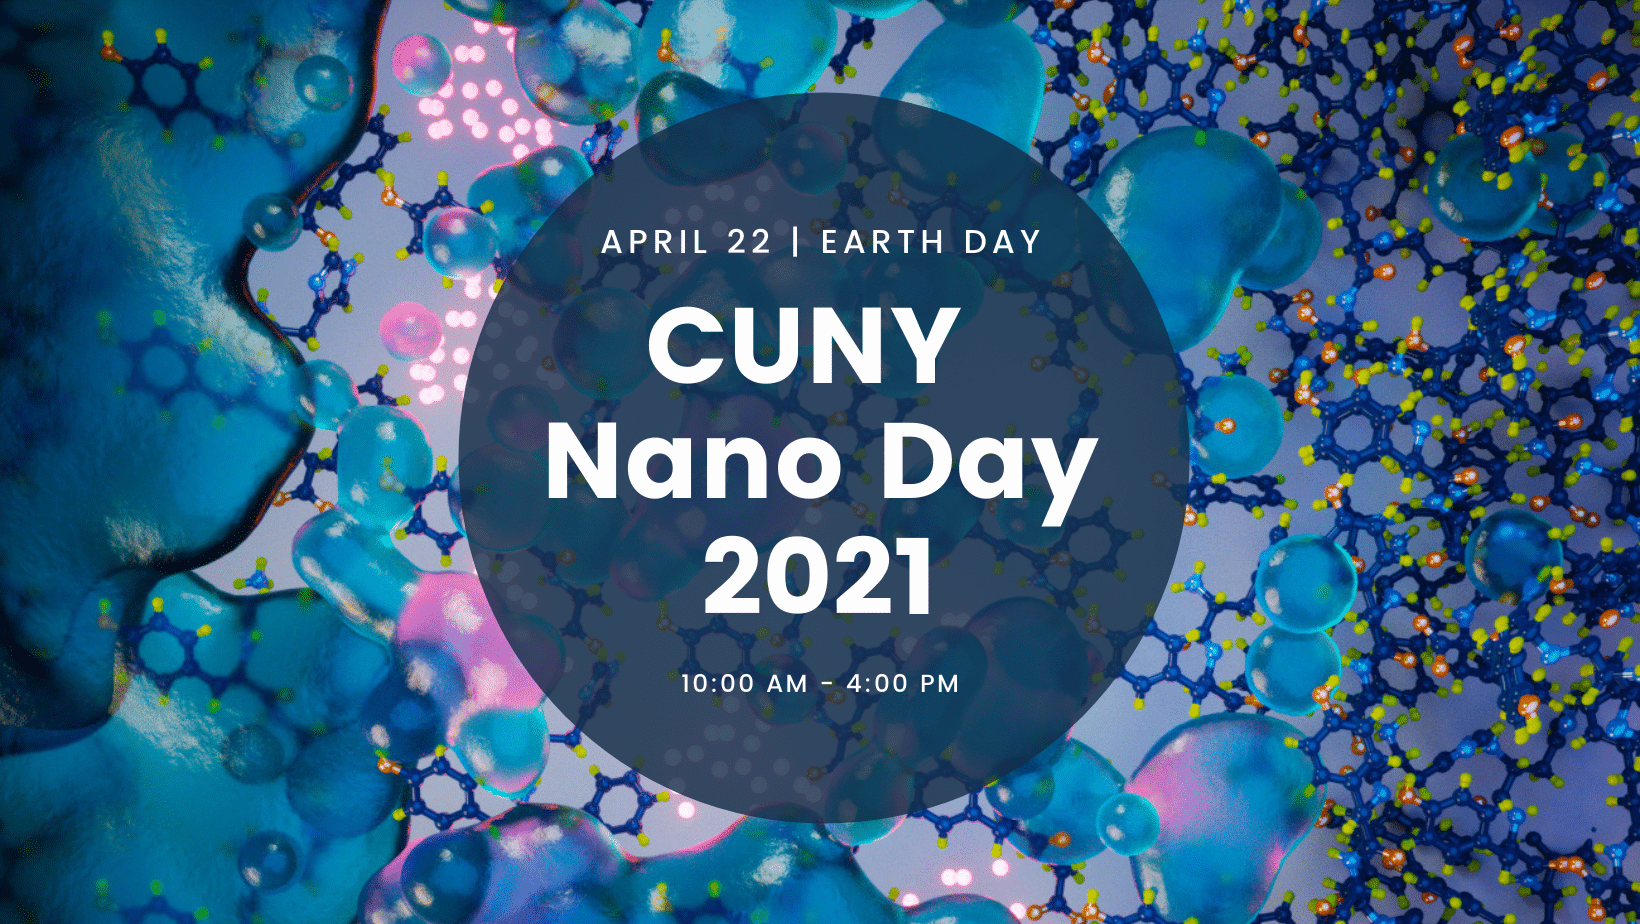 CUNY Nano Day 2021 will take palce on Earth Day, April 22.